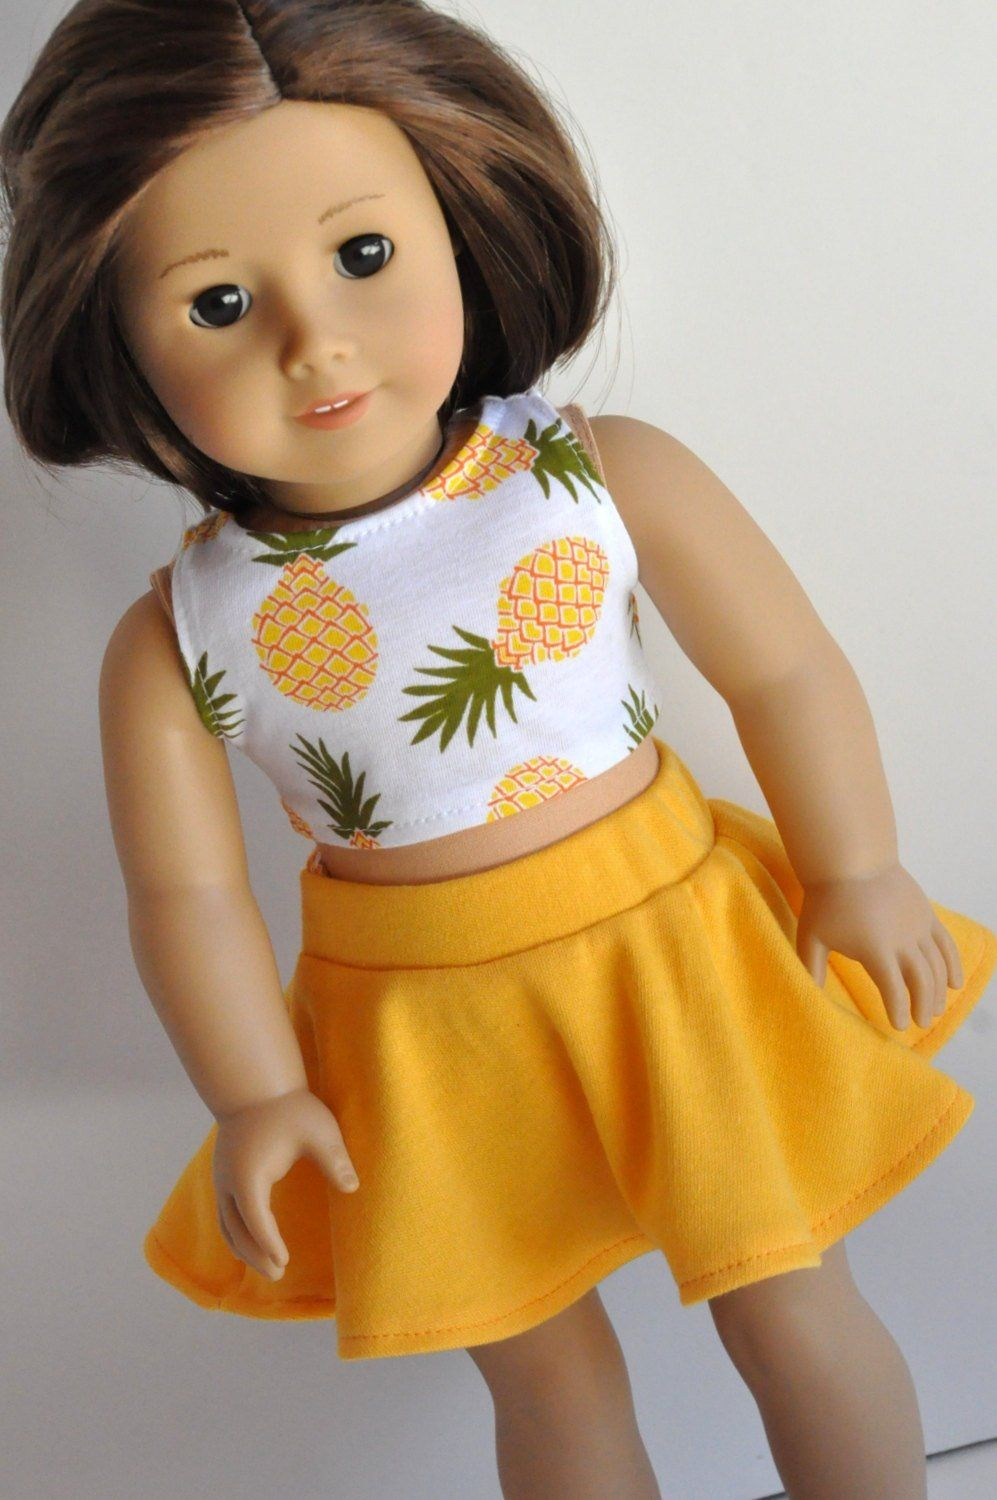 Watermelon Splash Outfit For American Girl Dolls 18 Inch Doll Clothes